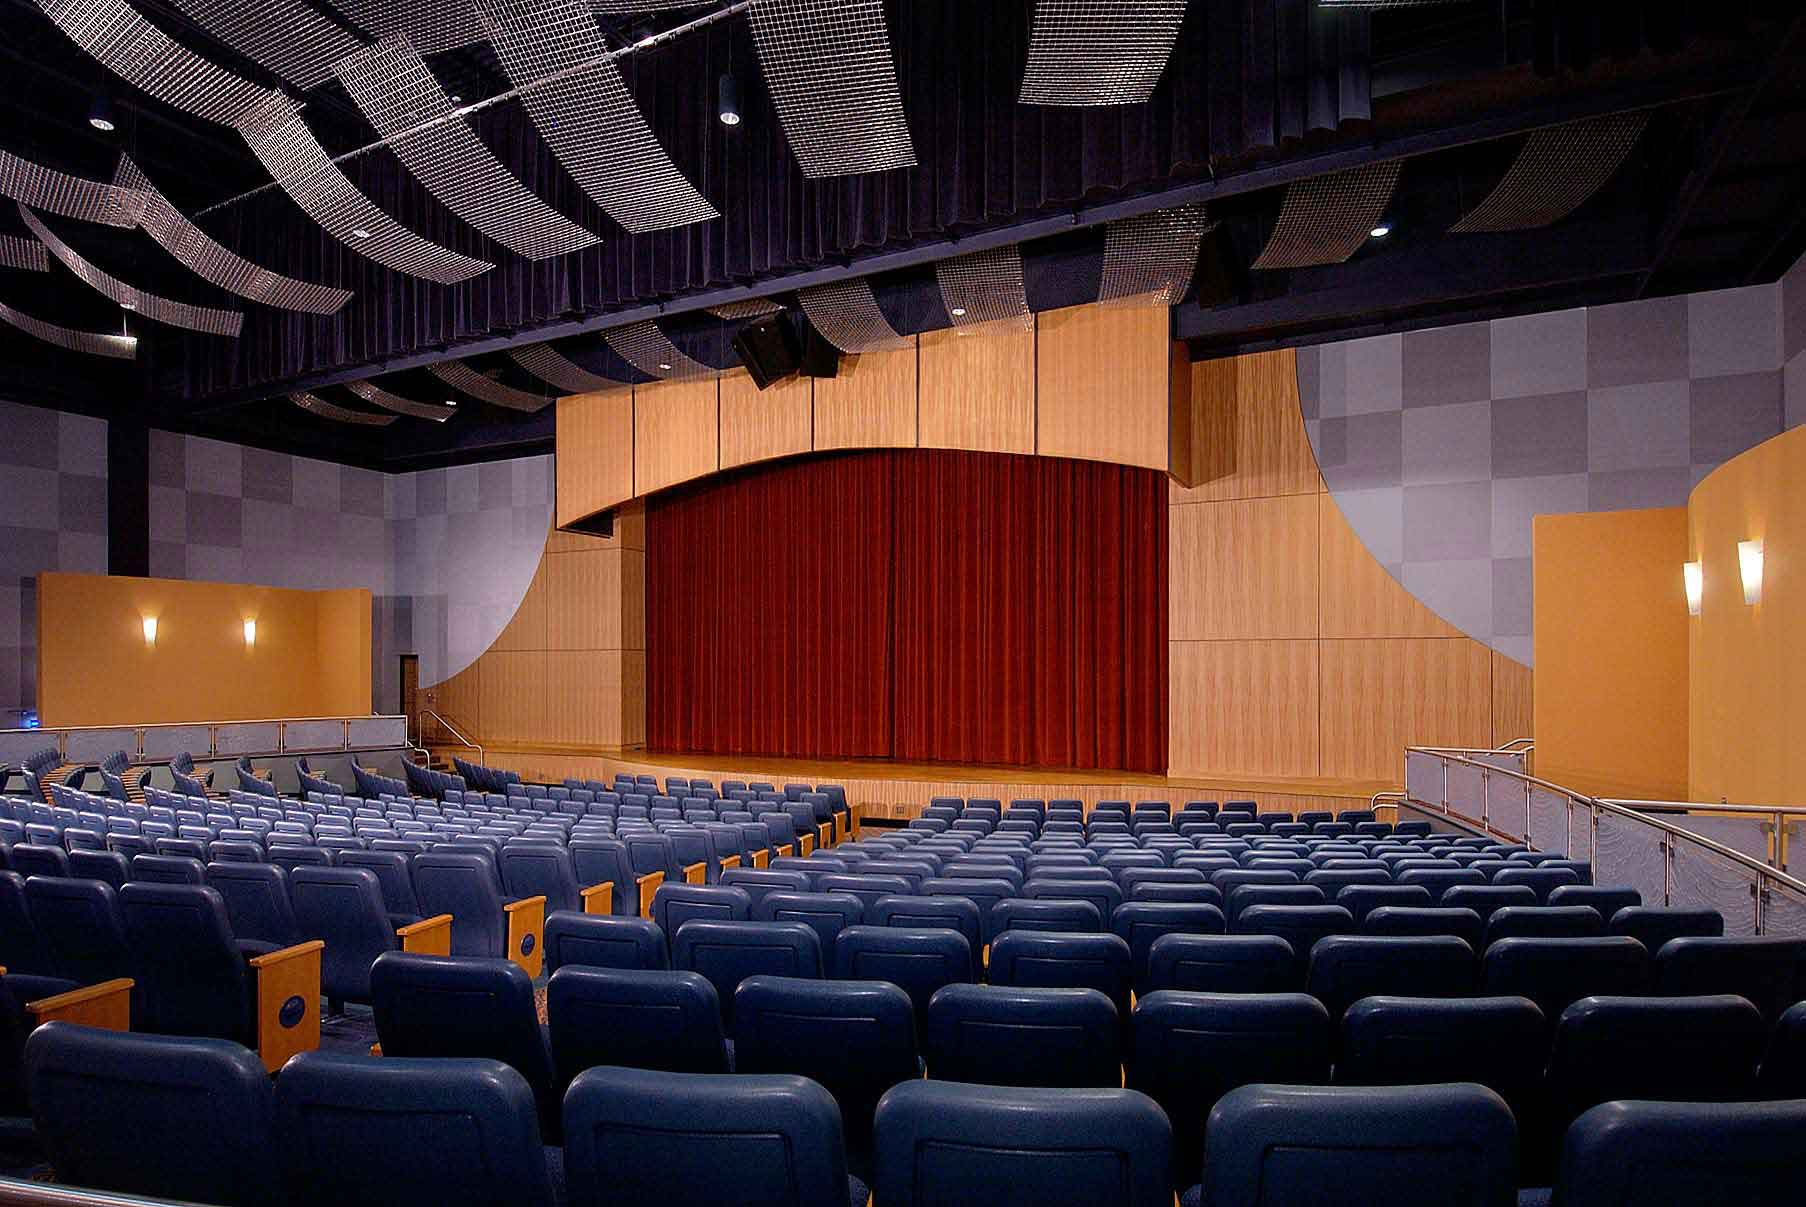 axelrod performing arts center